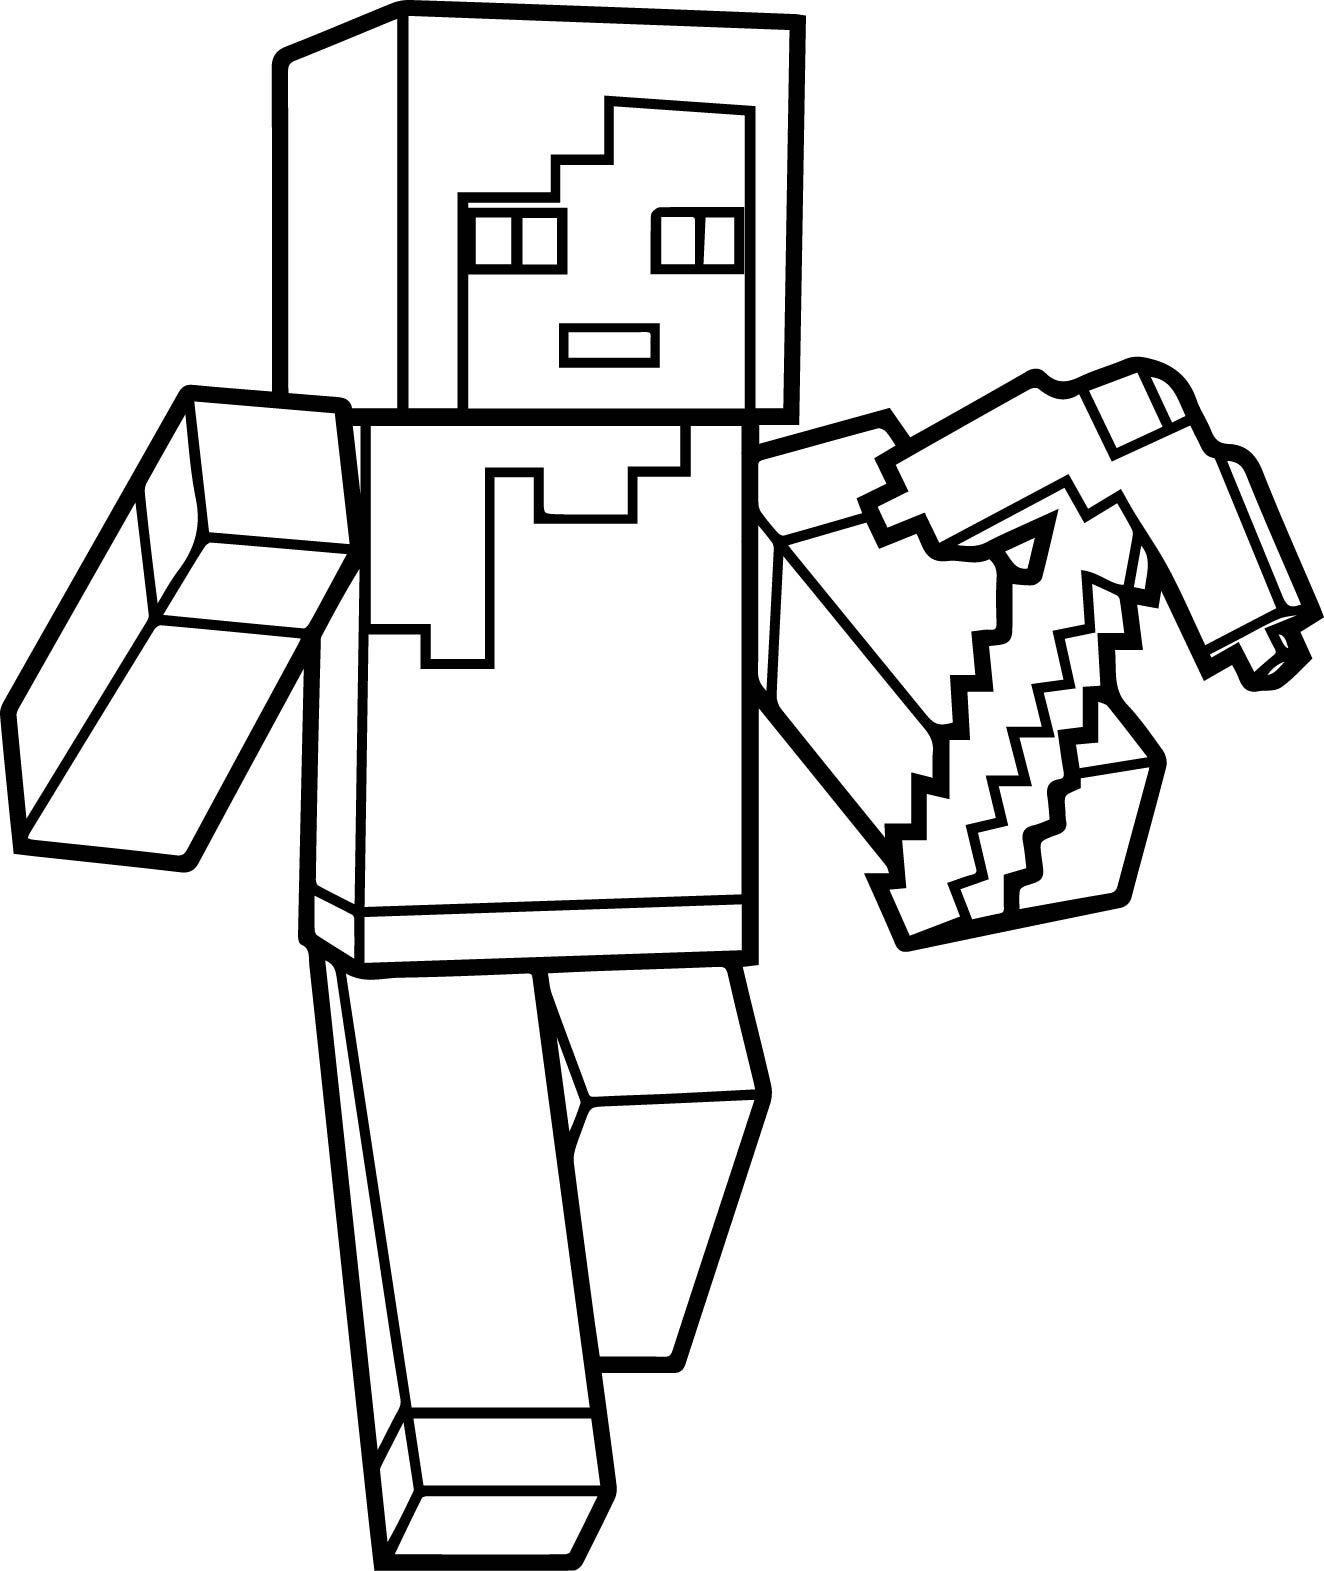 Minecraft Ausmalbilder Skelett : Minecraft Coloring Pages Steve Jpg 1324 1571 Cartoon Video